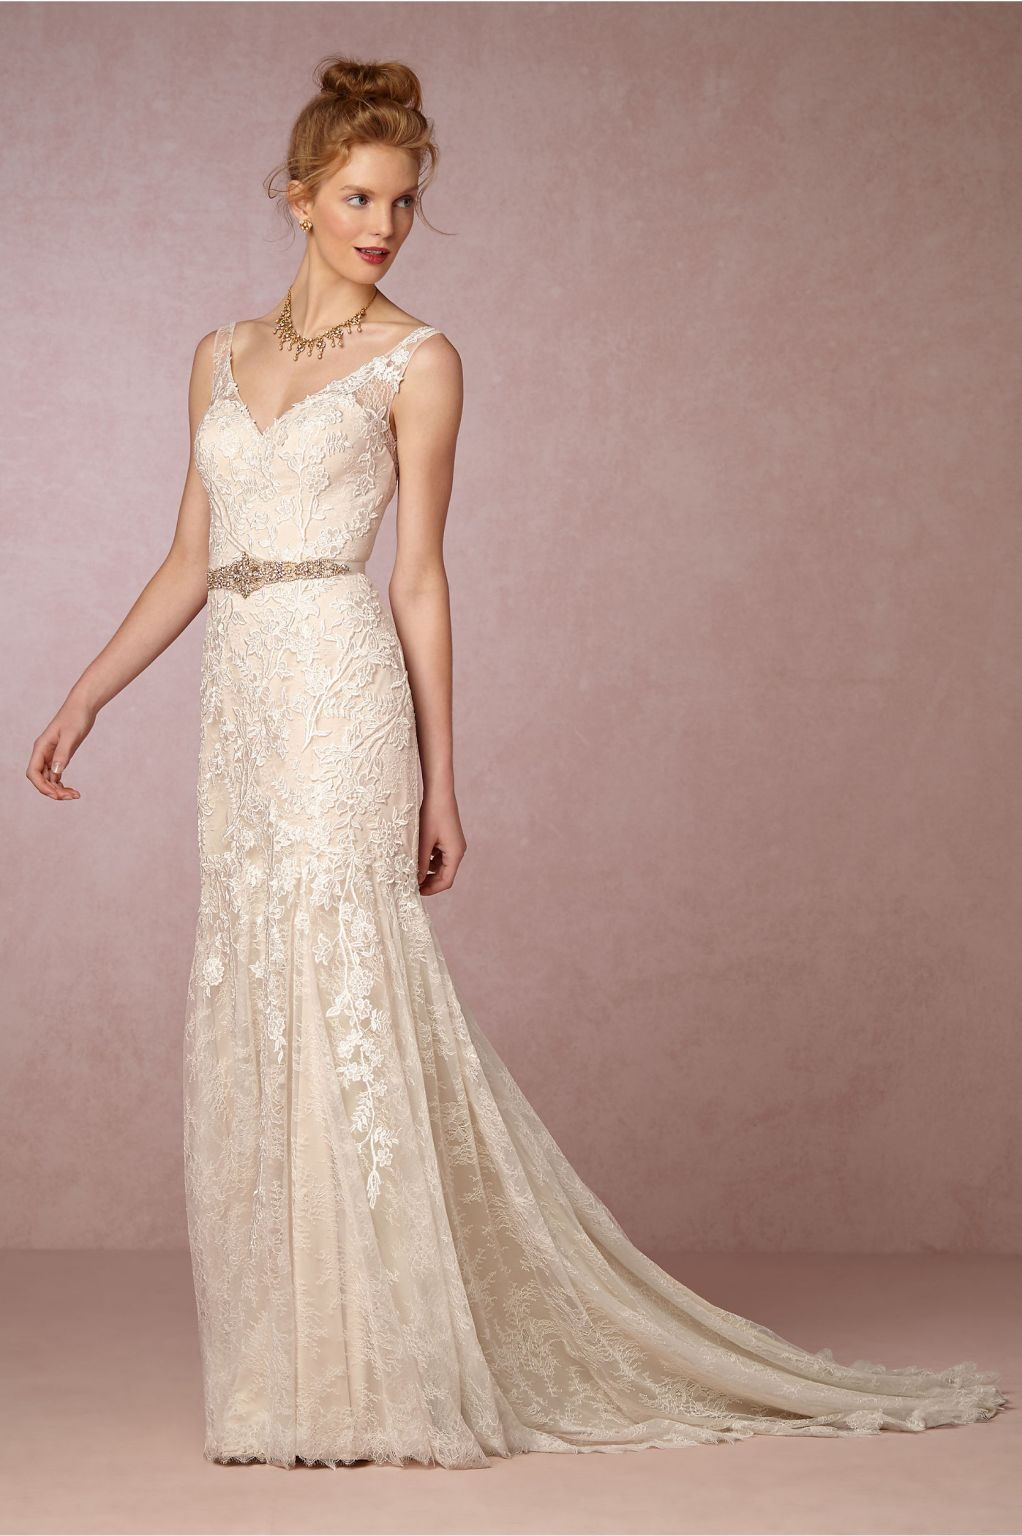 BHLDN Va et Vien Elisha Dress, $375 Size: 14 | Used Wedding Dresses ...